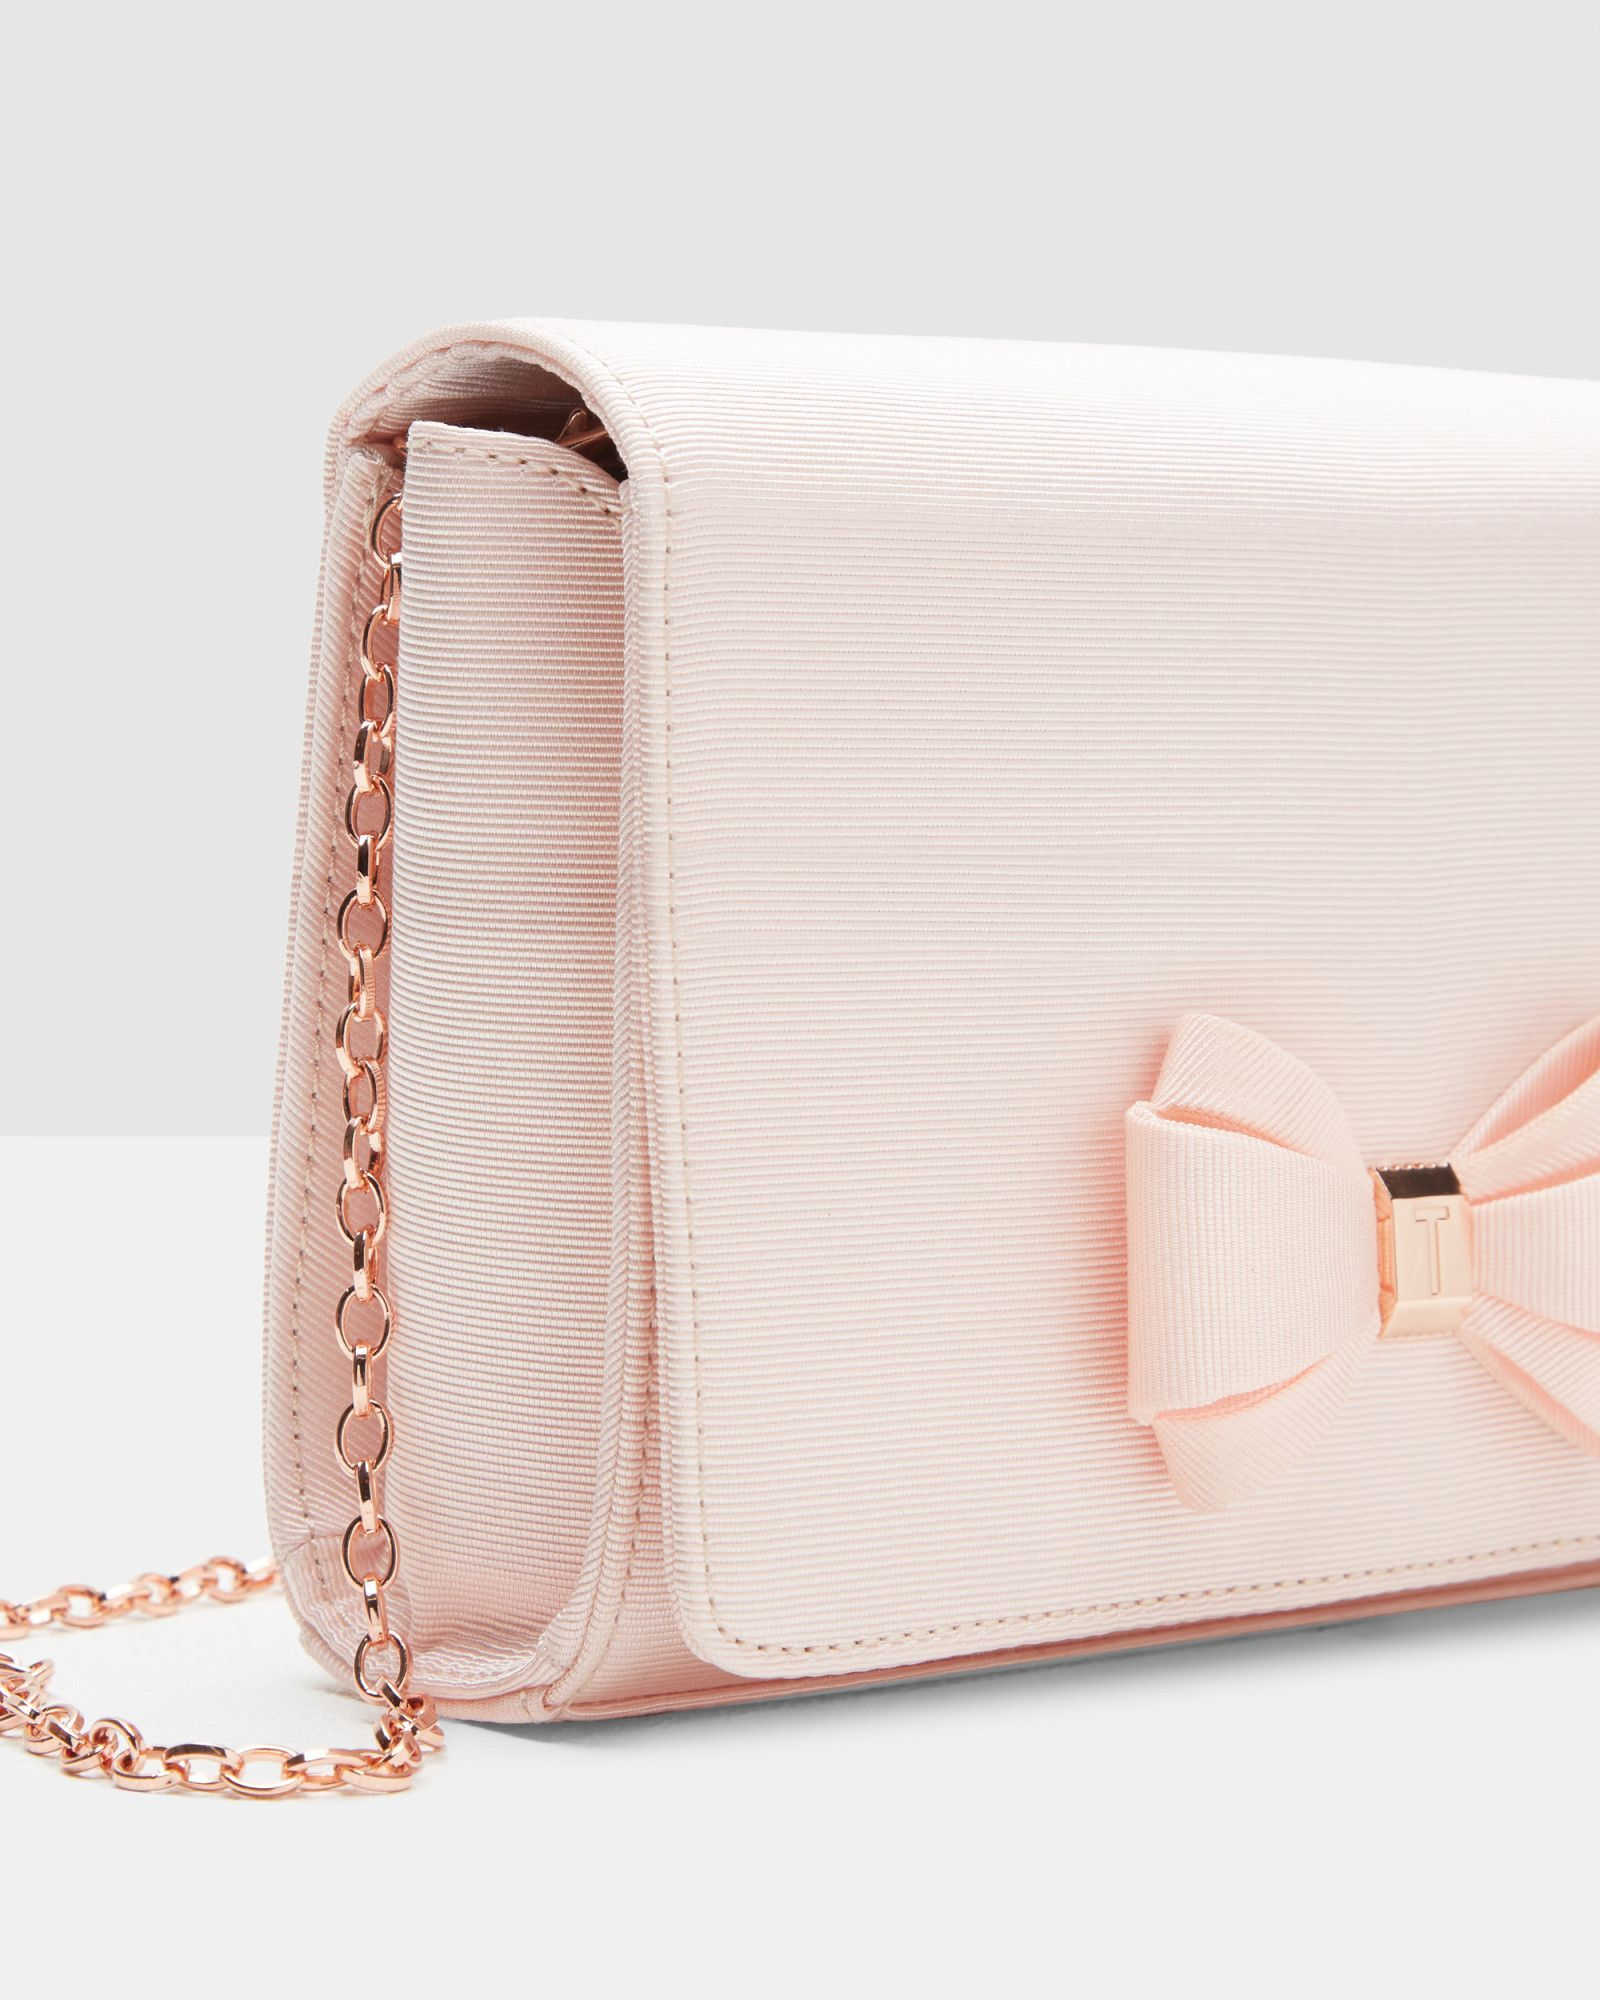 Bow Detail Clutch Baby Pink Ss17 Tie The Knot Ted